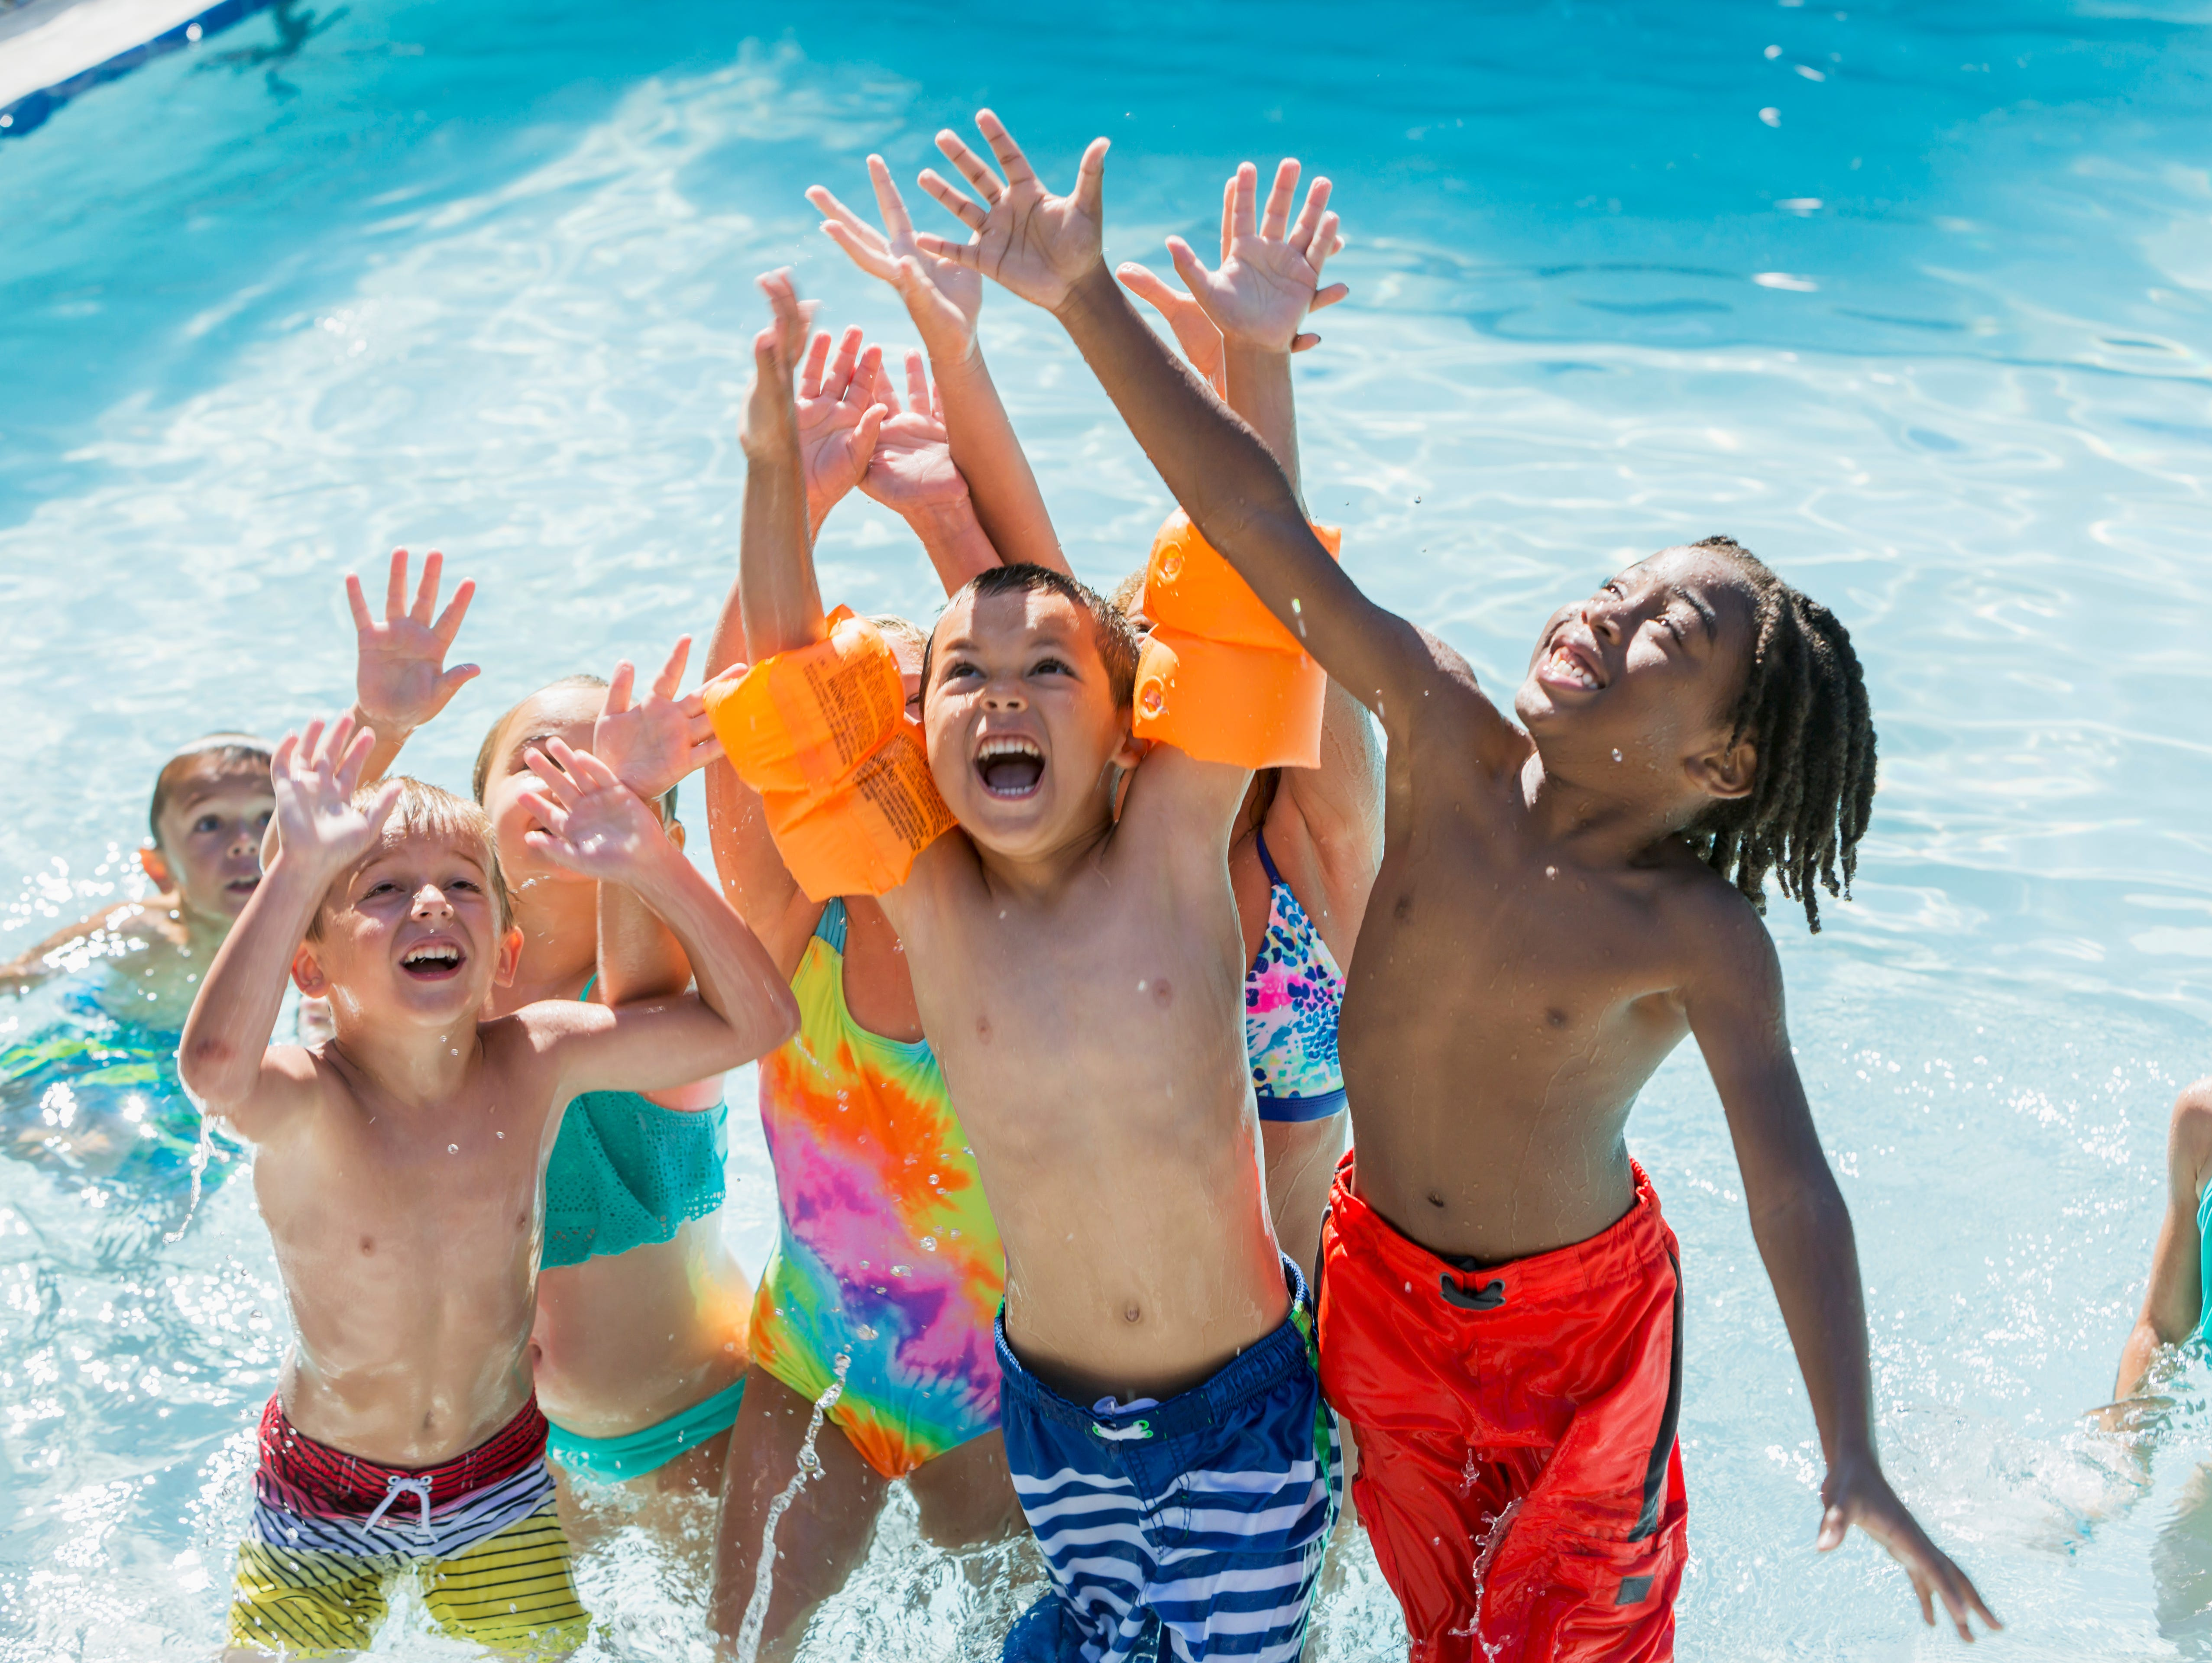 Enjoy your time by the pool with a Fun in the Sun Sweepstakes! Enter 5/31-6/27!